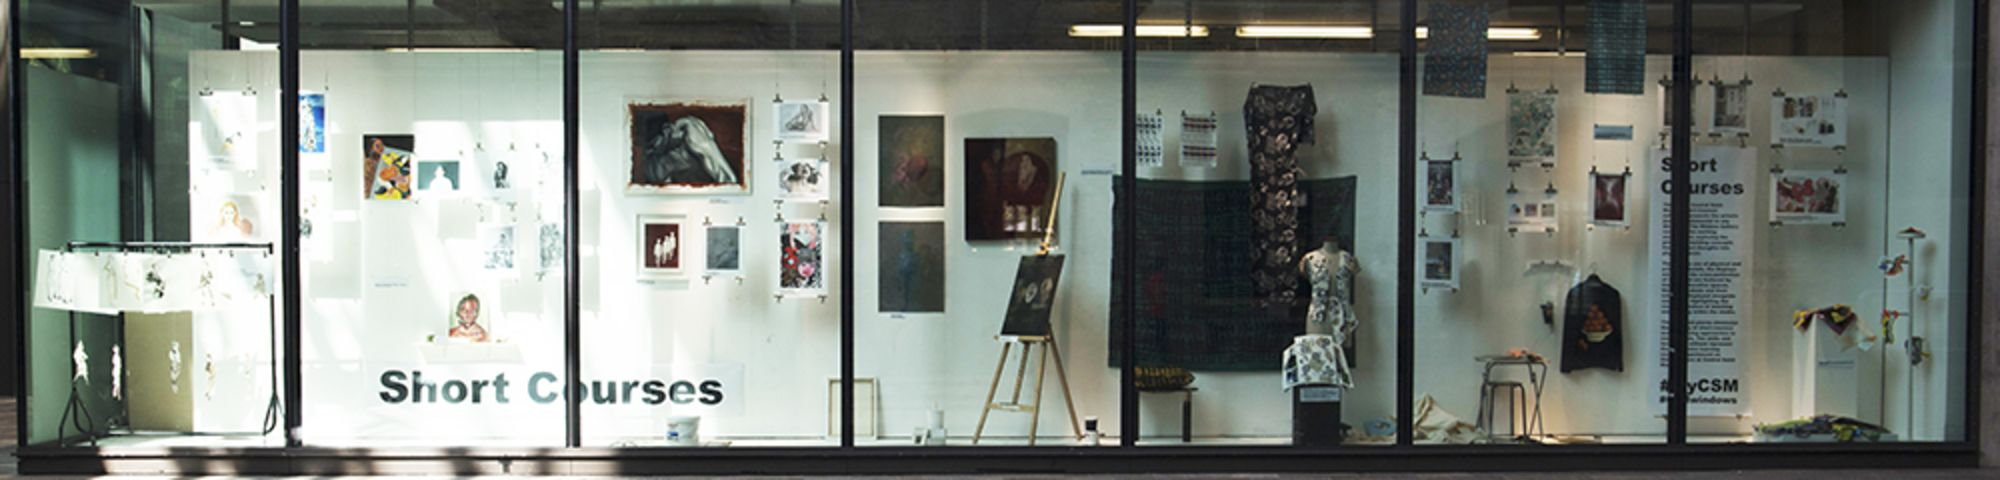 CSM Short Courses Window Gallery Exhibition left side